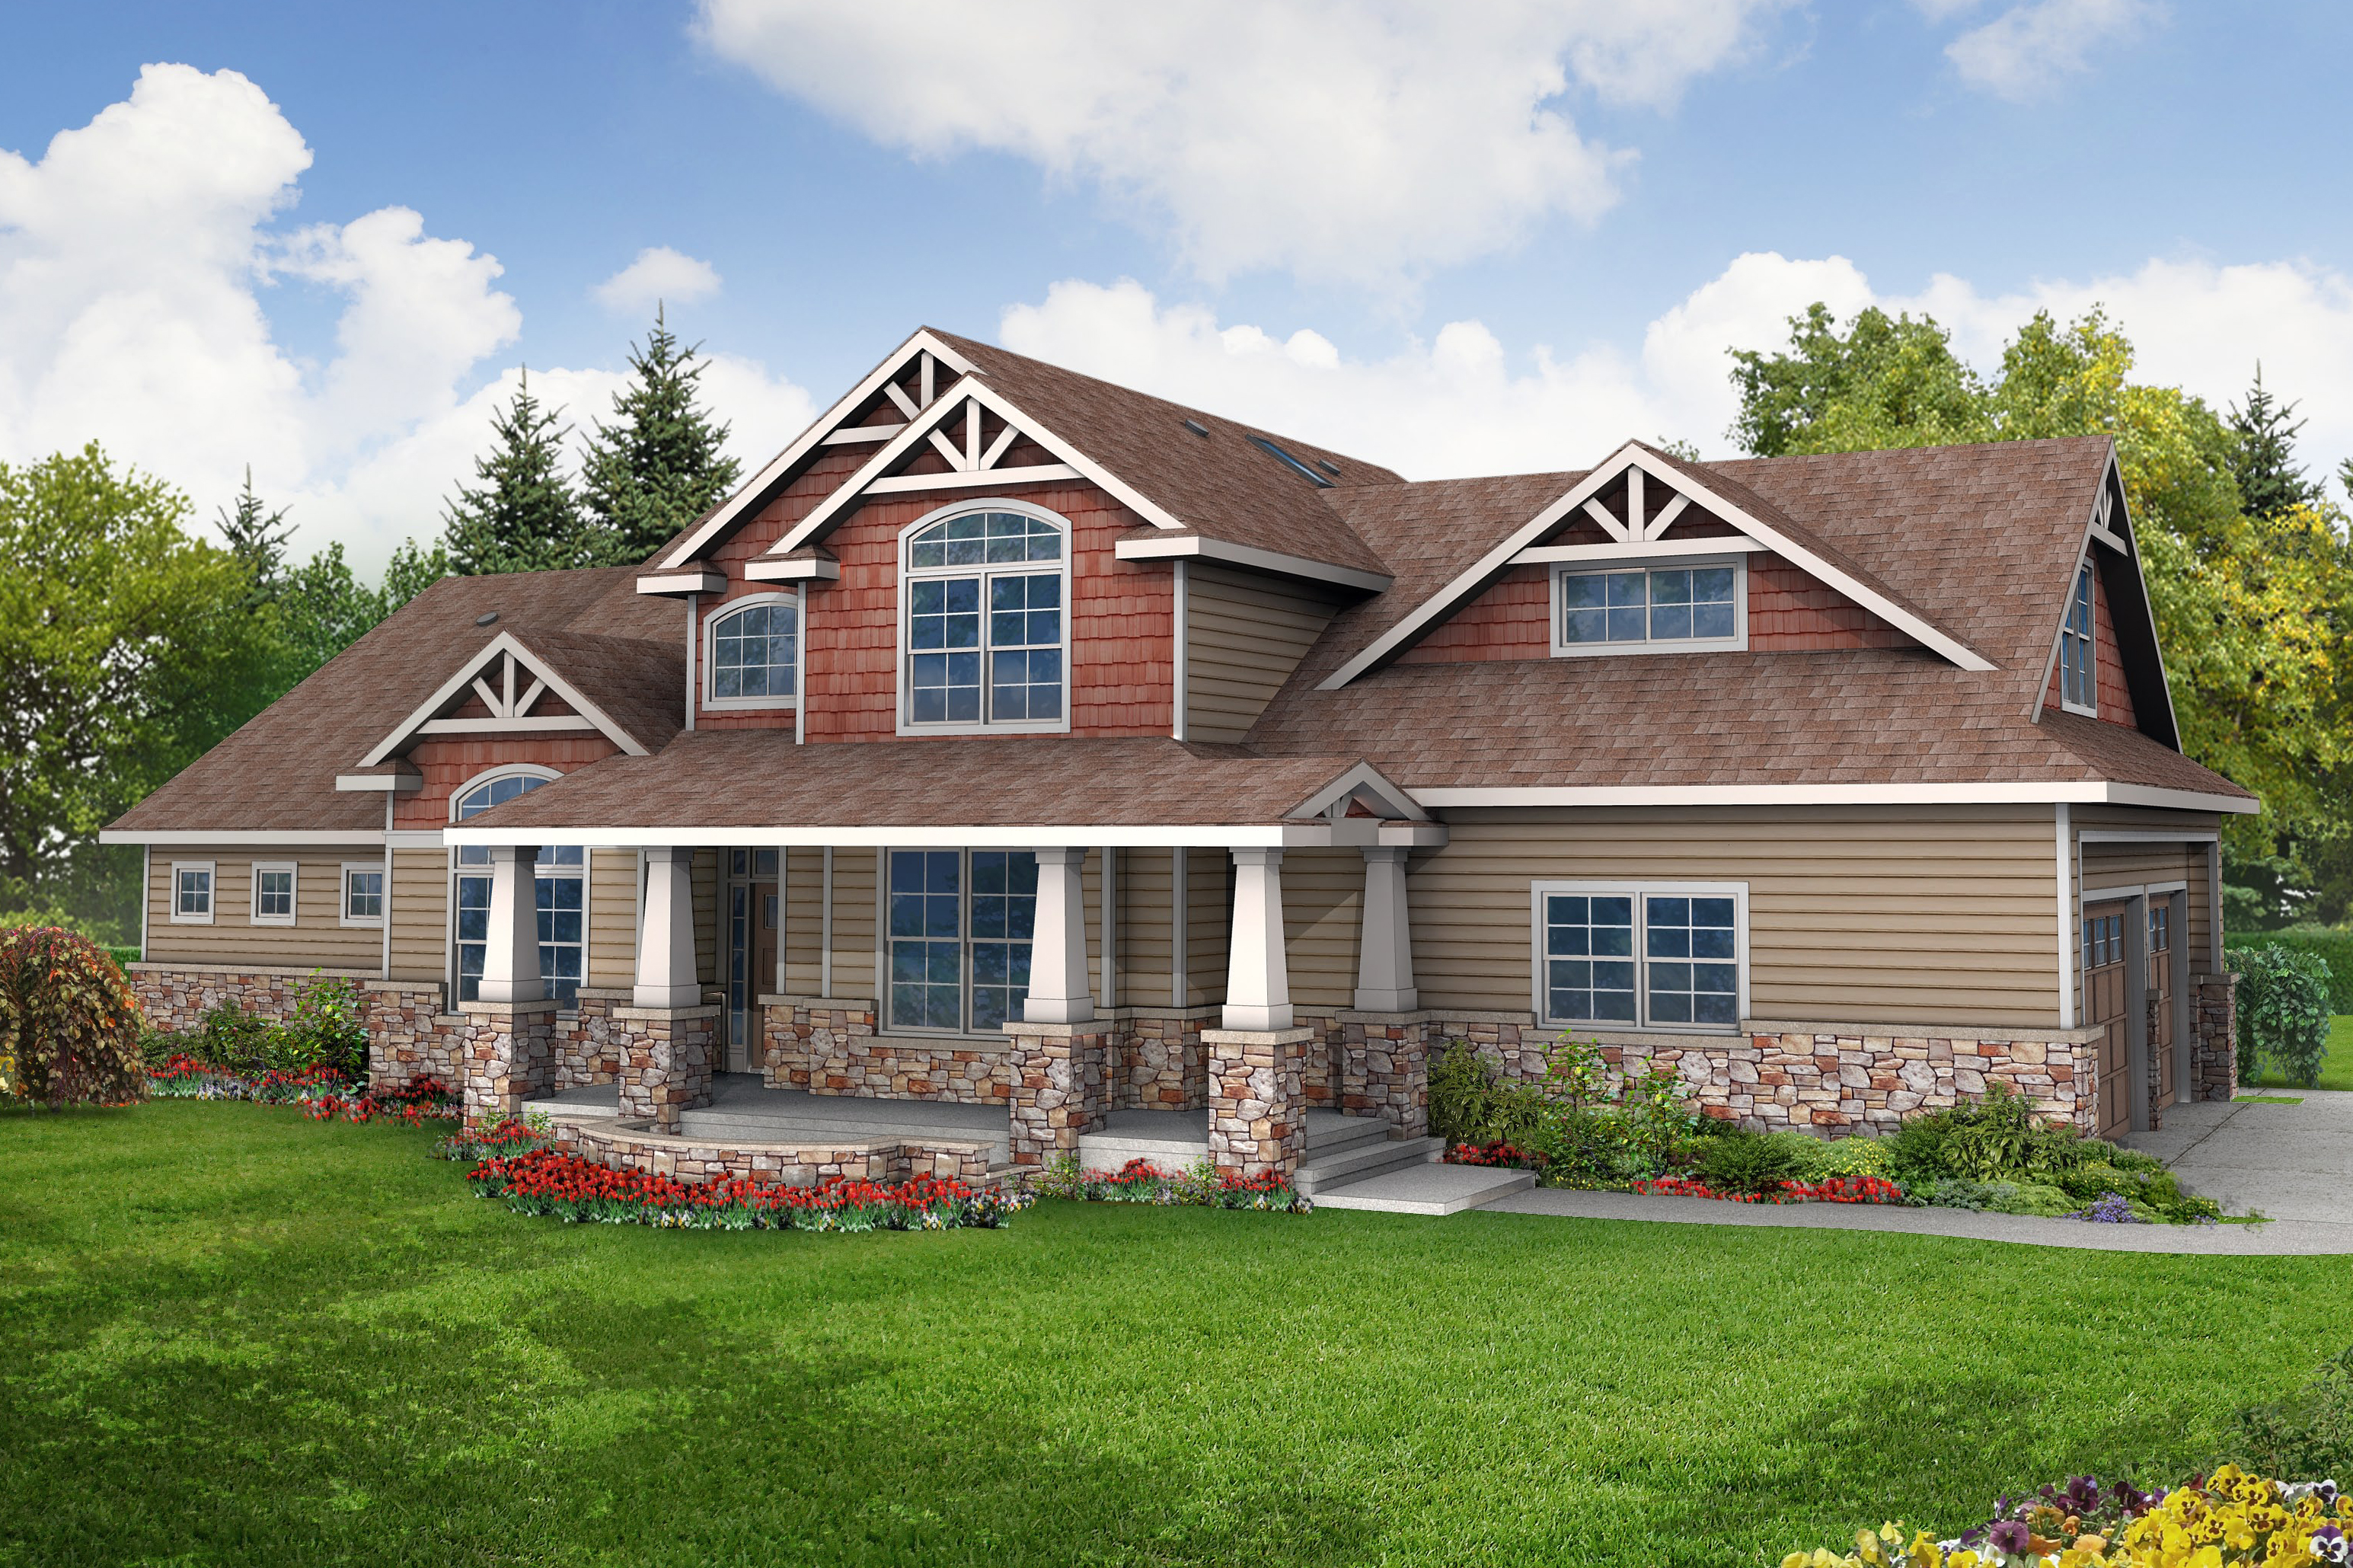 craftsman house plans craftsman home plans craftsman